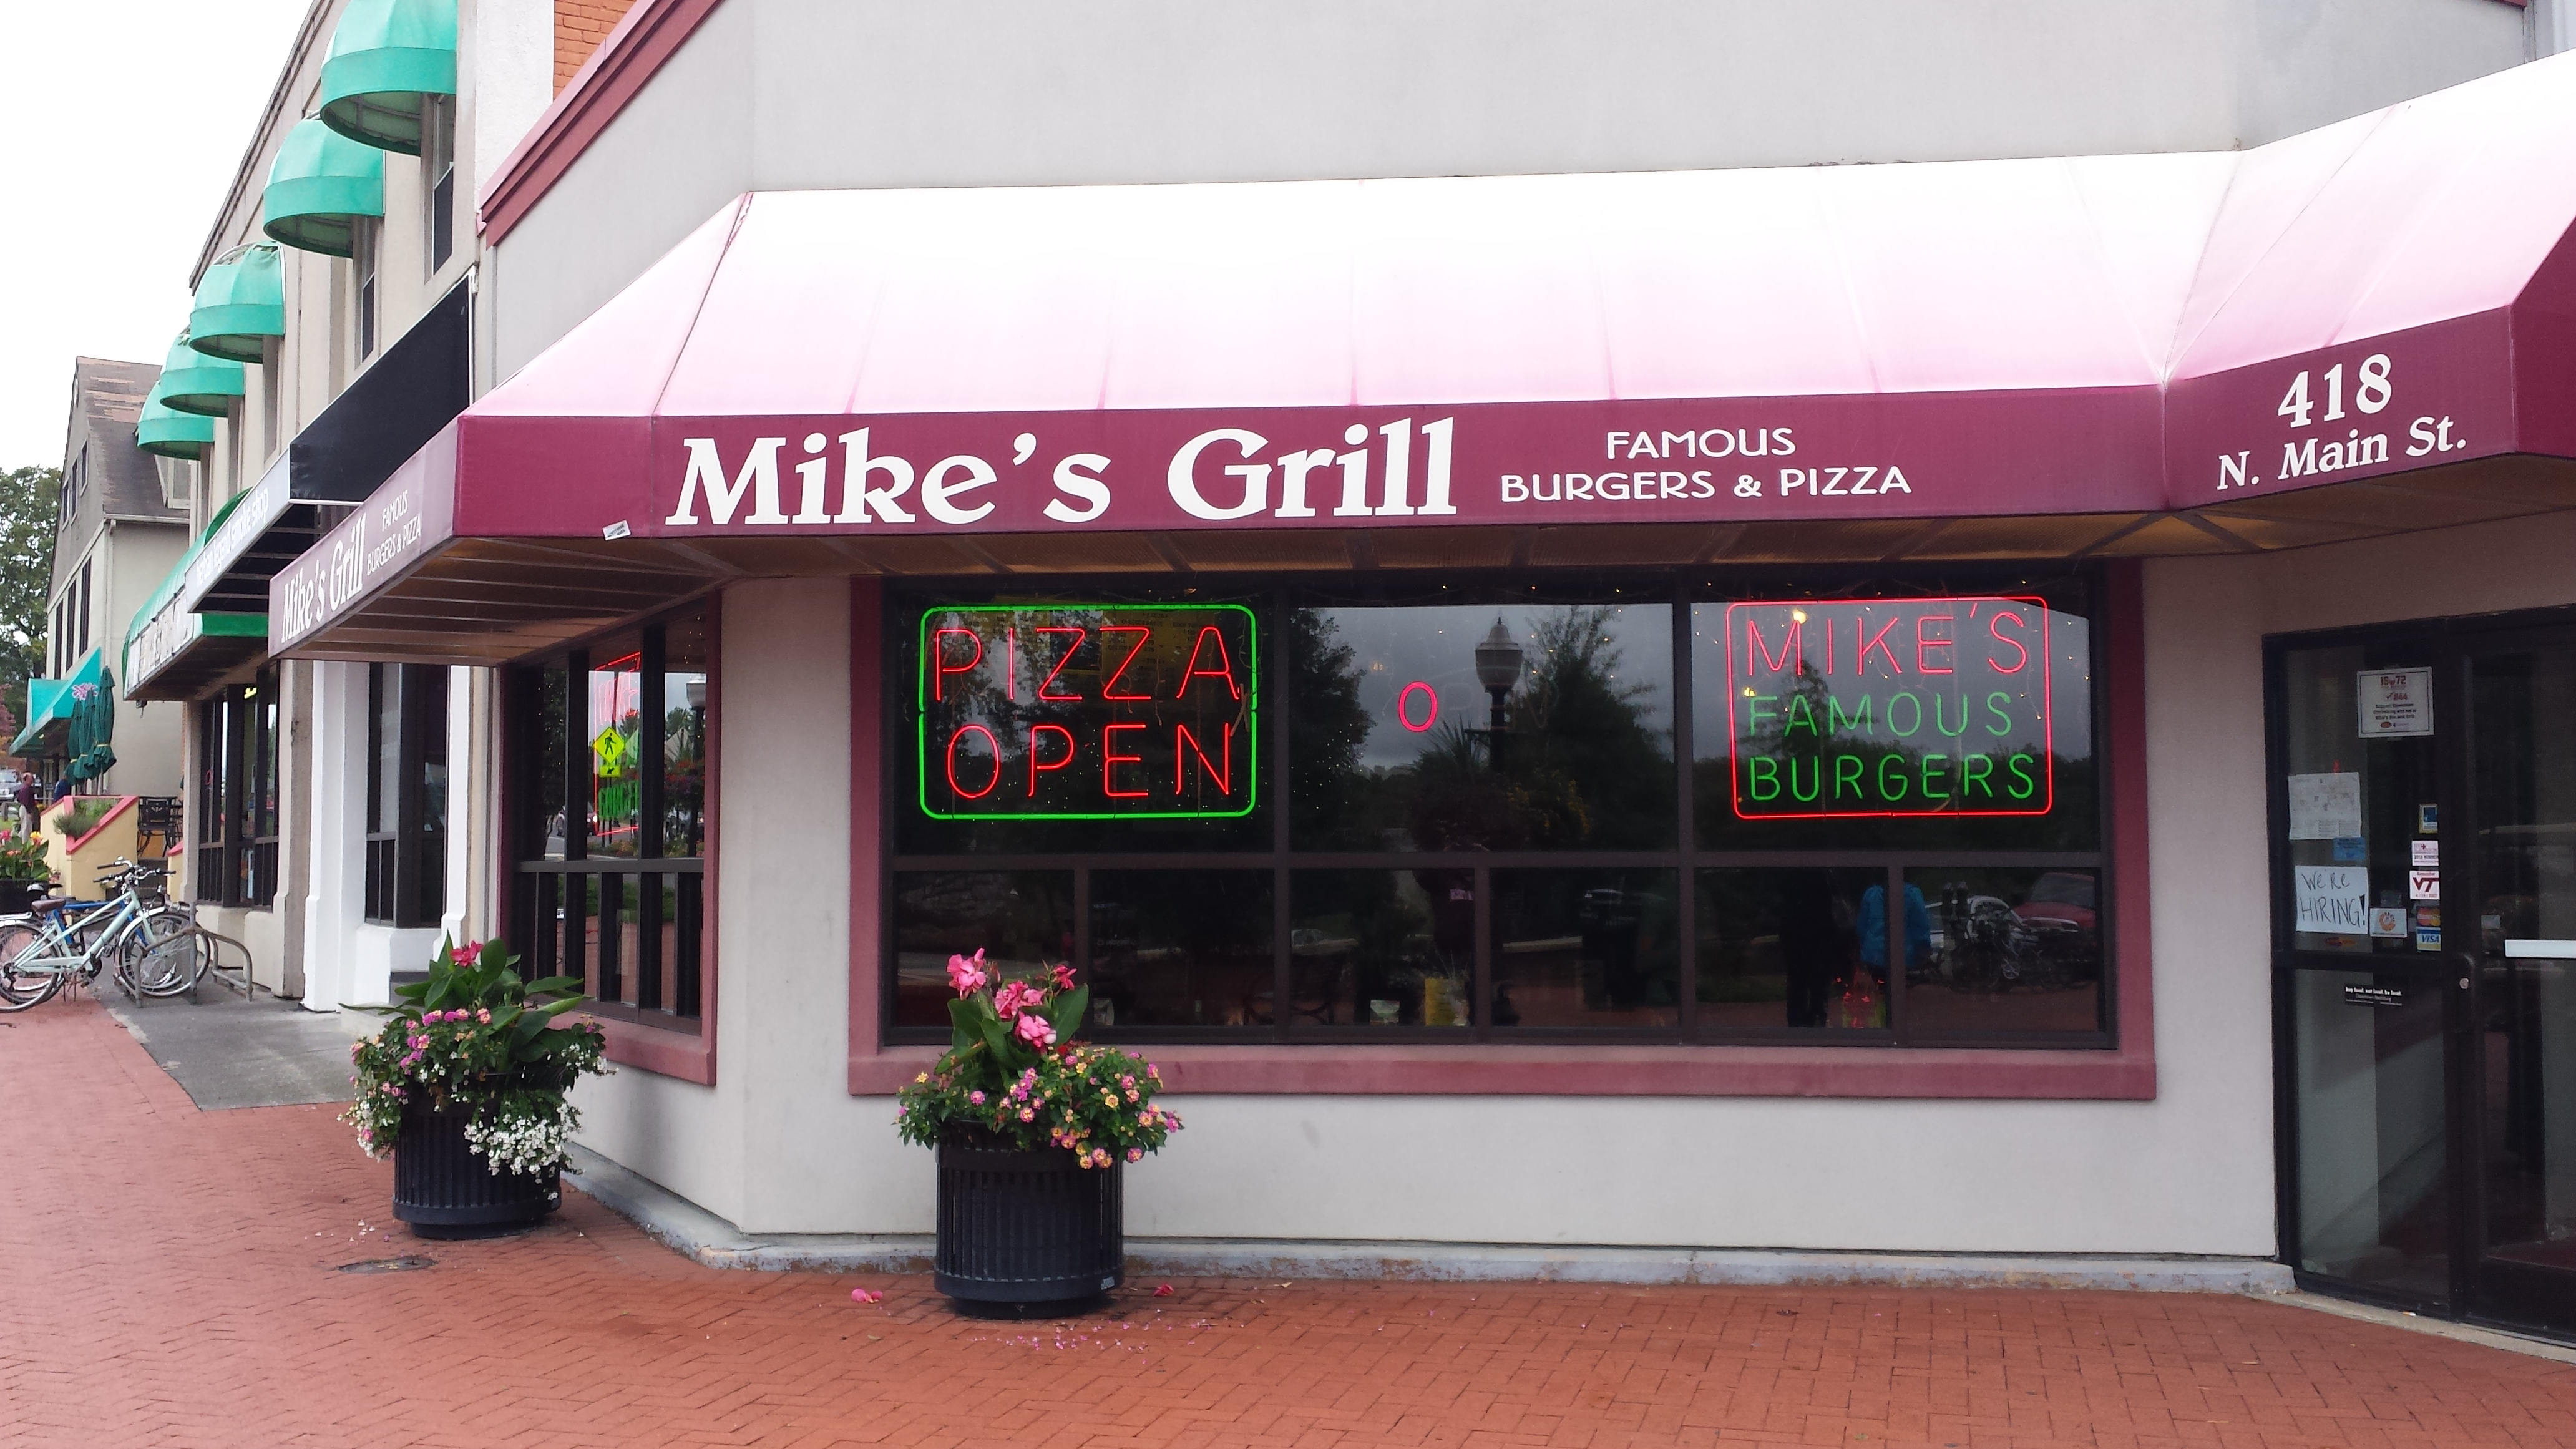 Mikes Grill at the top of the Mall